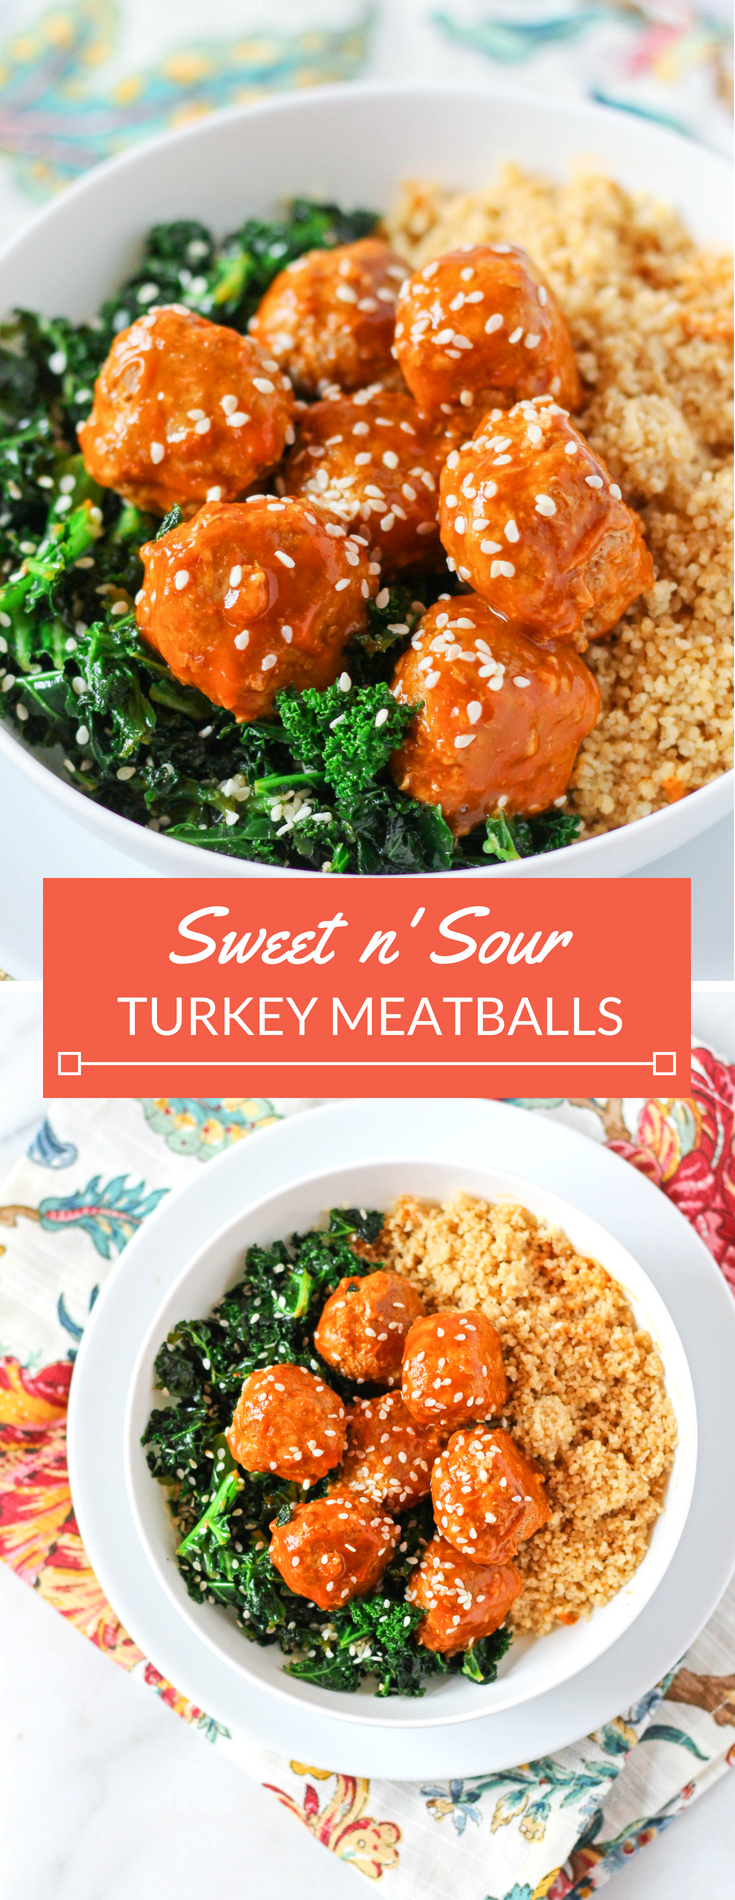 Sweet & Sour Turkey Meatballs with Sesame Kale and Couscous